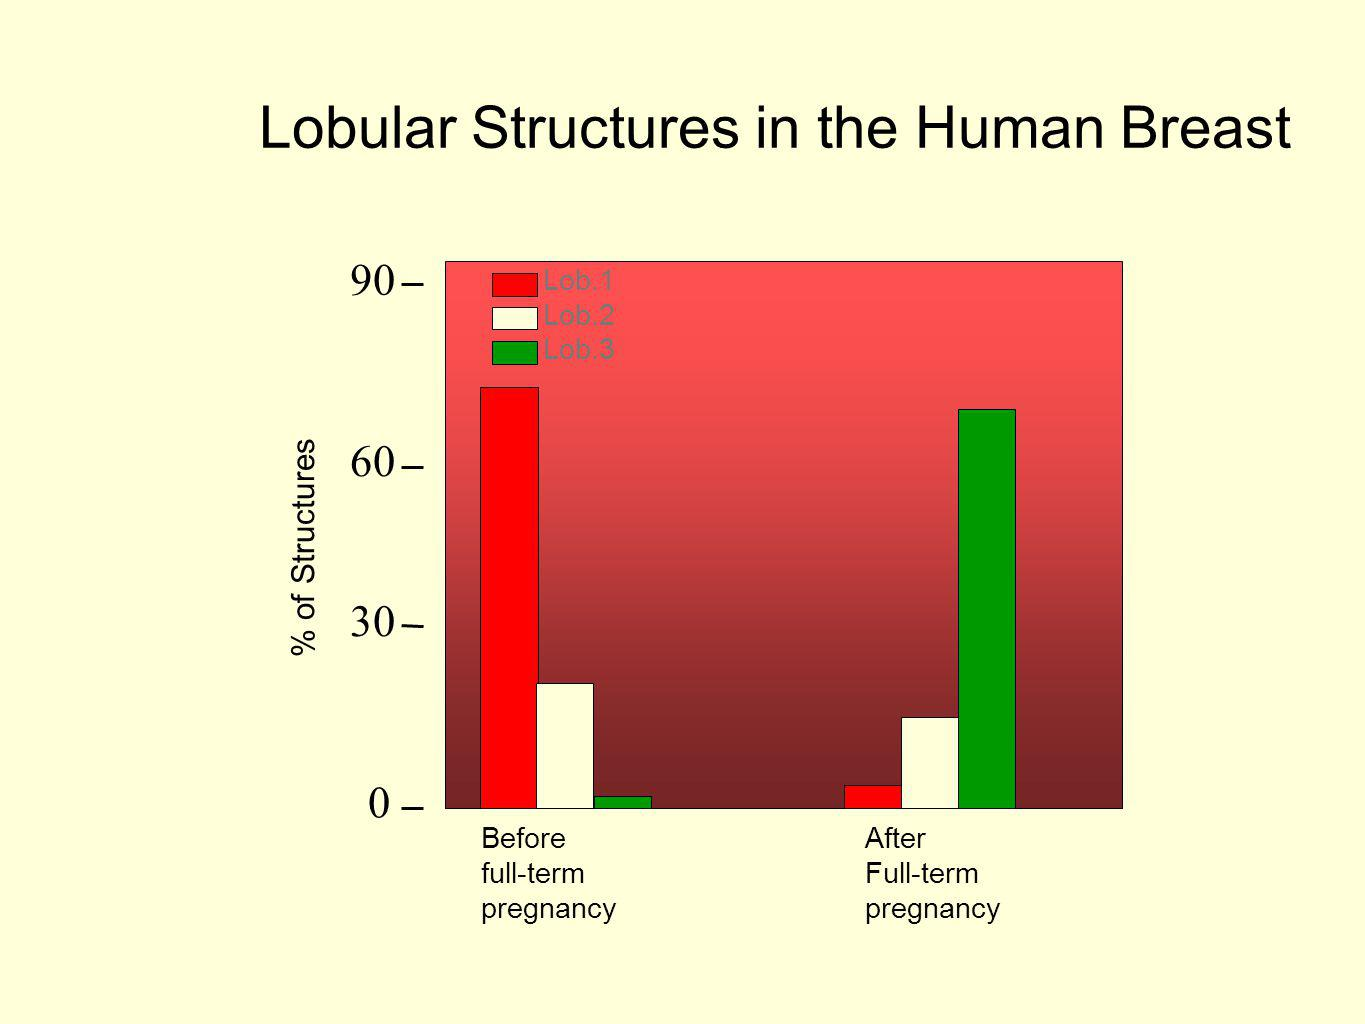 Lobular Structures in the Human Breast